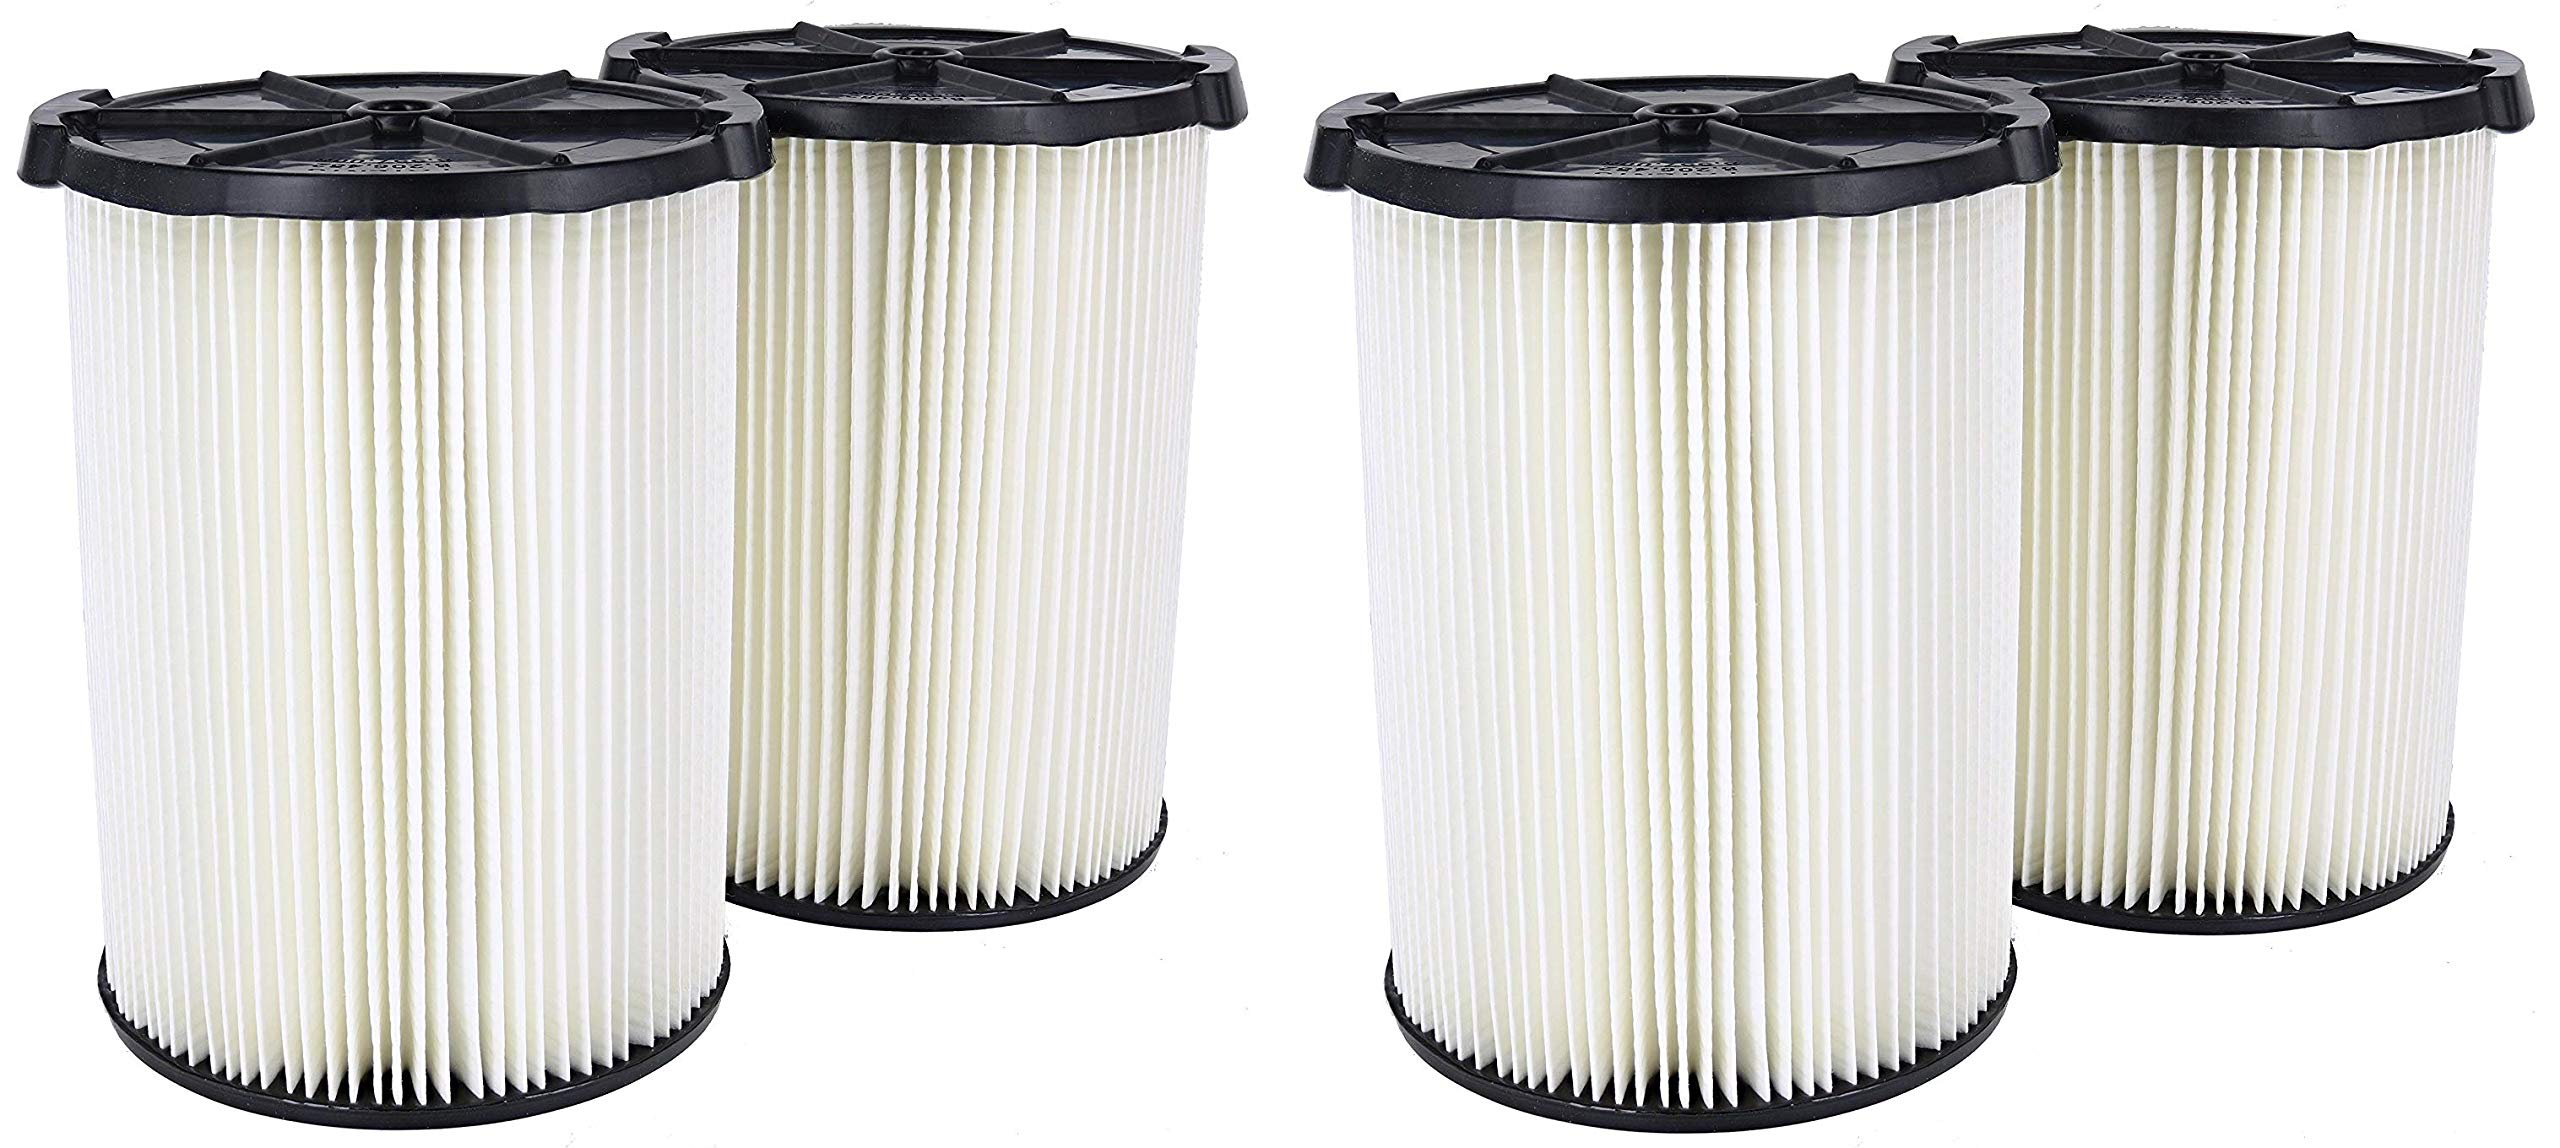 Ridgid VF4200 Genuine Replacement 1-Layer Everyday Dirt Wet/Dry Vac Filter for Ridgid 5-20 Gallon Vacuums (2 X Pack of 2) by Ridgid